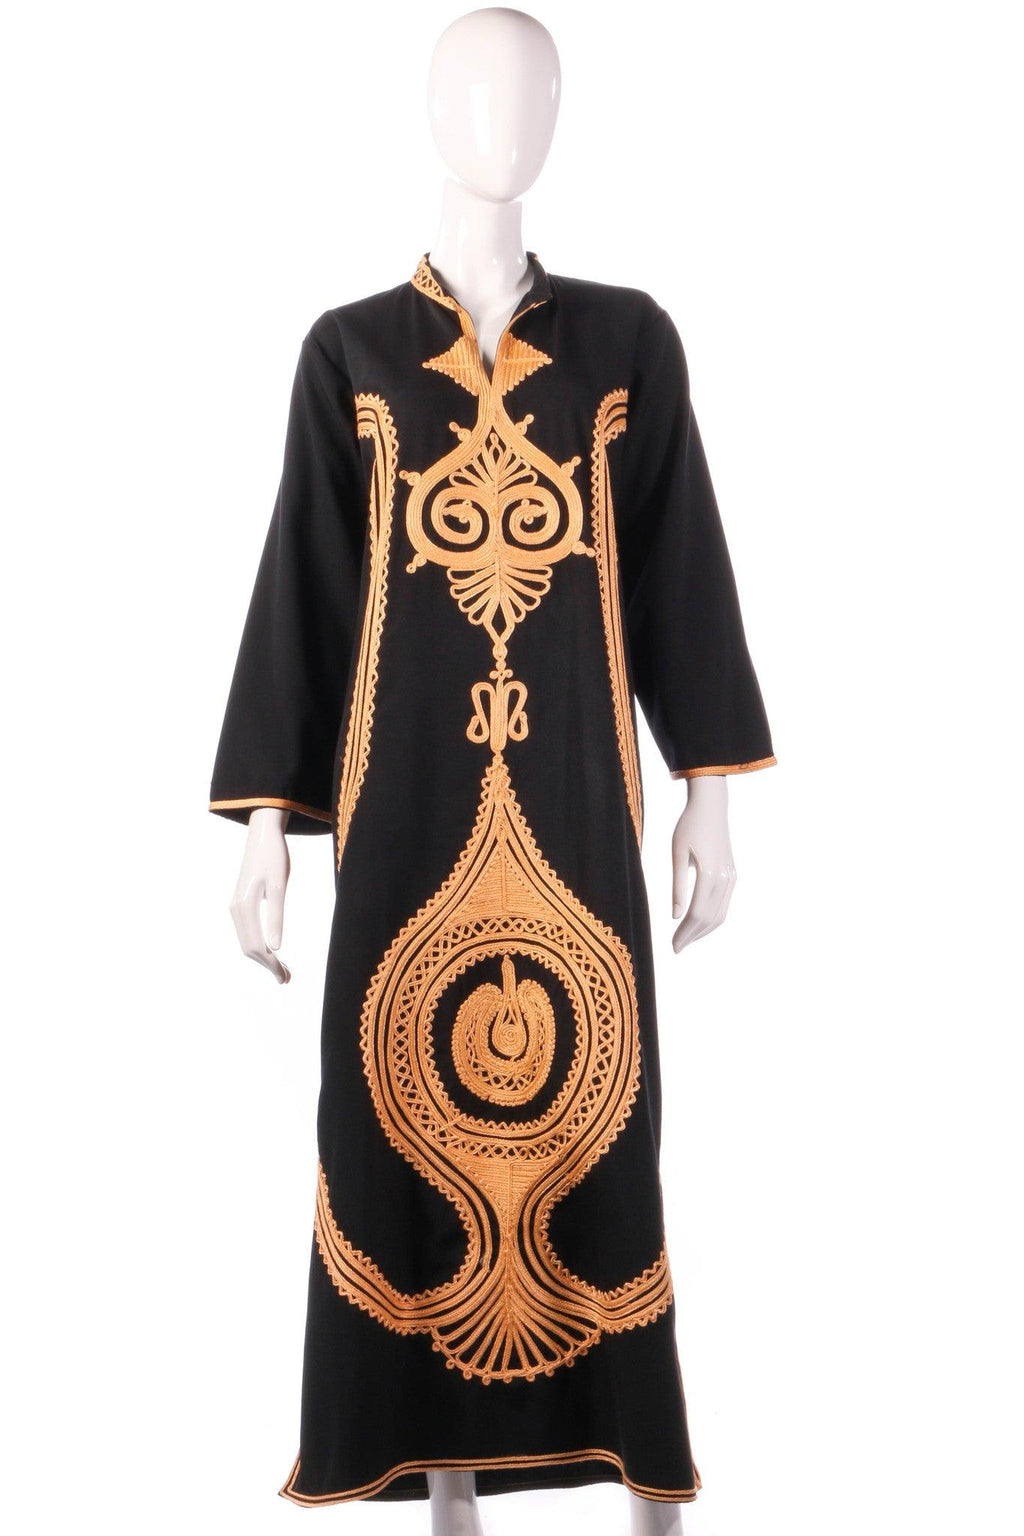 Black dress with gold motif